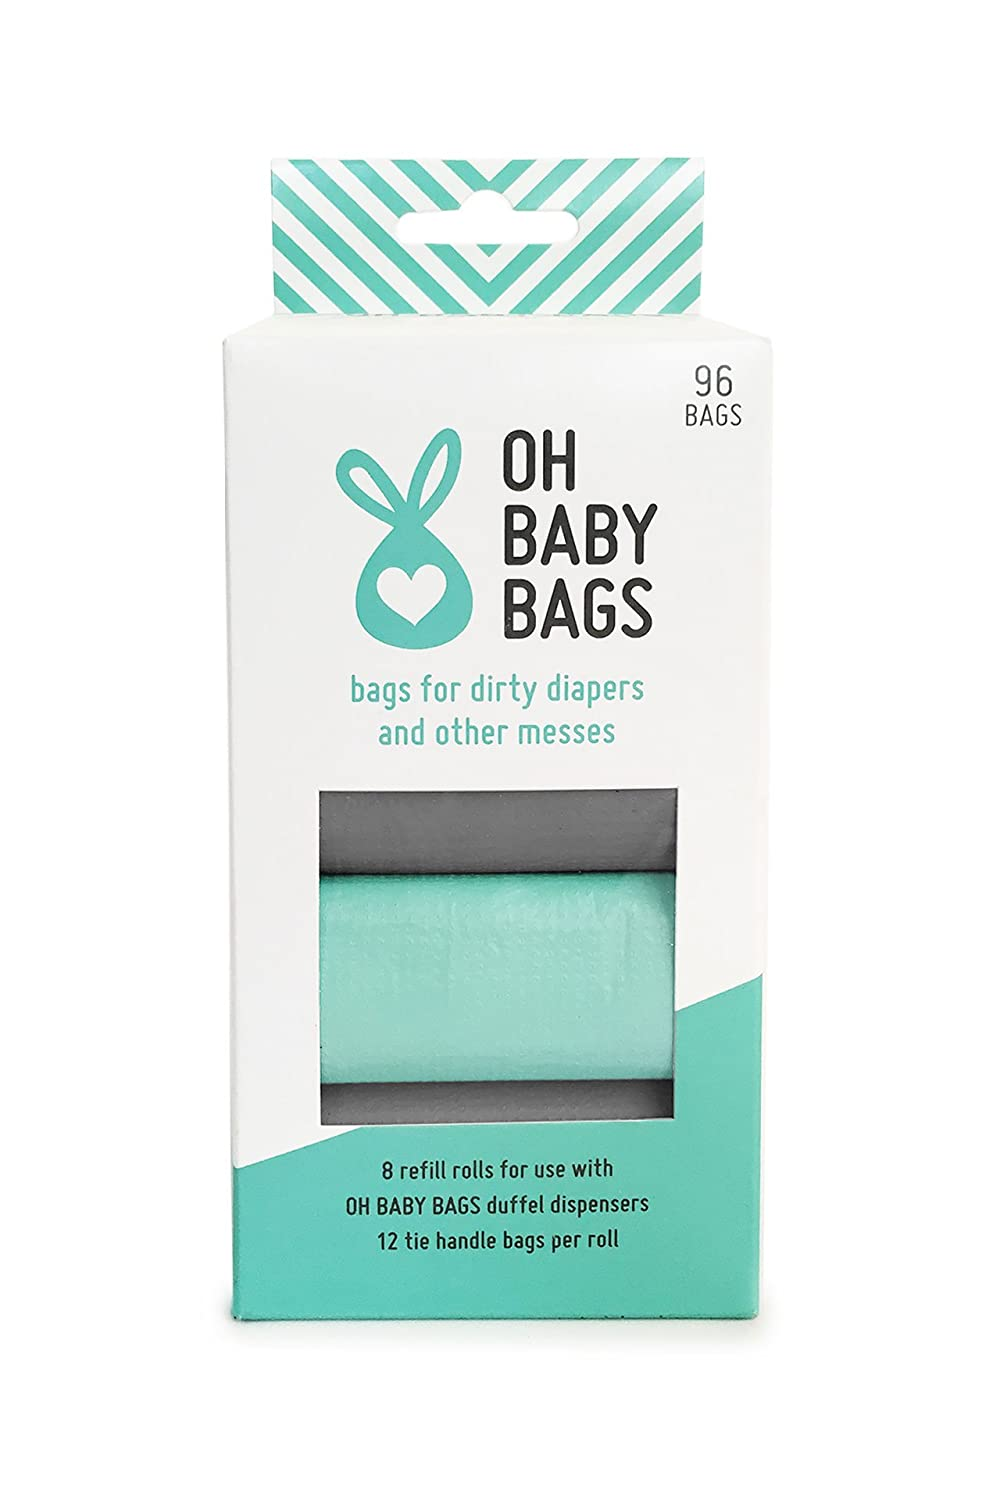 Oh Baby Bags Bulk Refill Box - Recycled Scented Disposable Plastic Bags for Dirty Diapers and Other Messes - Refills Only - 8 Rolls, 96 Bags Total - Seafoam and Gray H&PC-42614